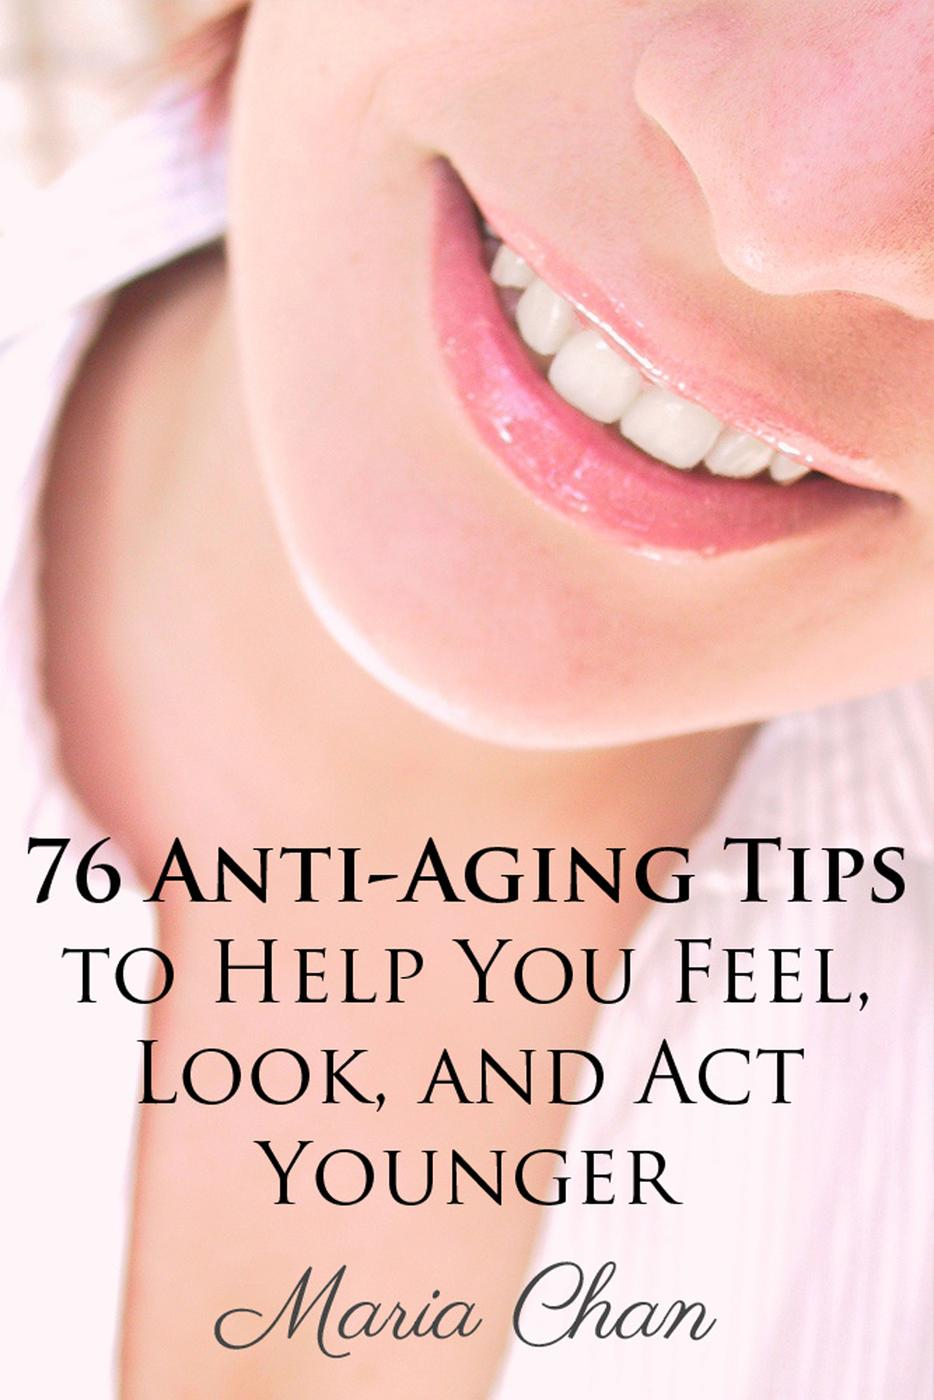 76 Anti-Aging Tips To Help You Feel, Look, and Act Younger By: Maria Chan